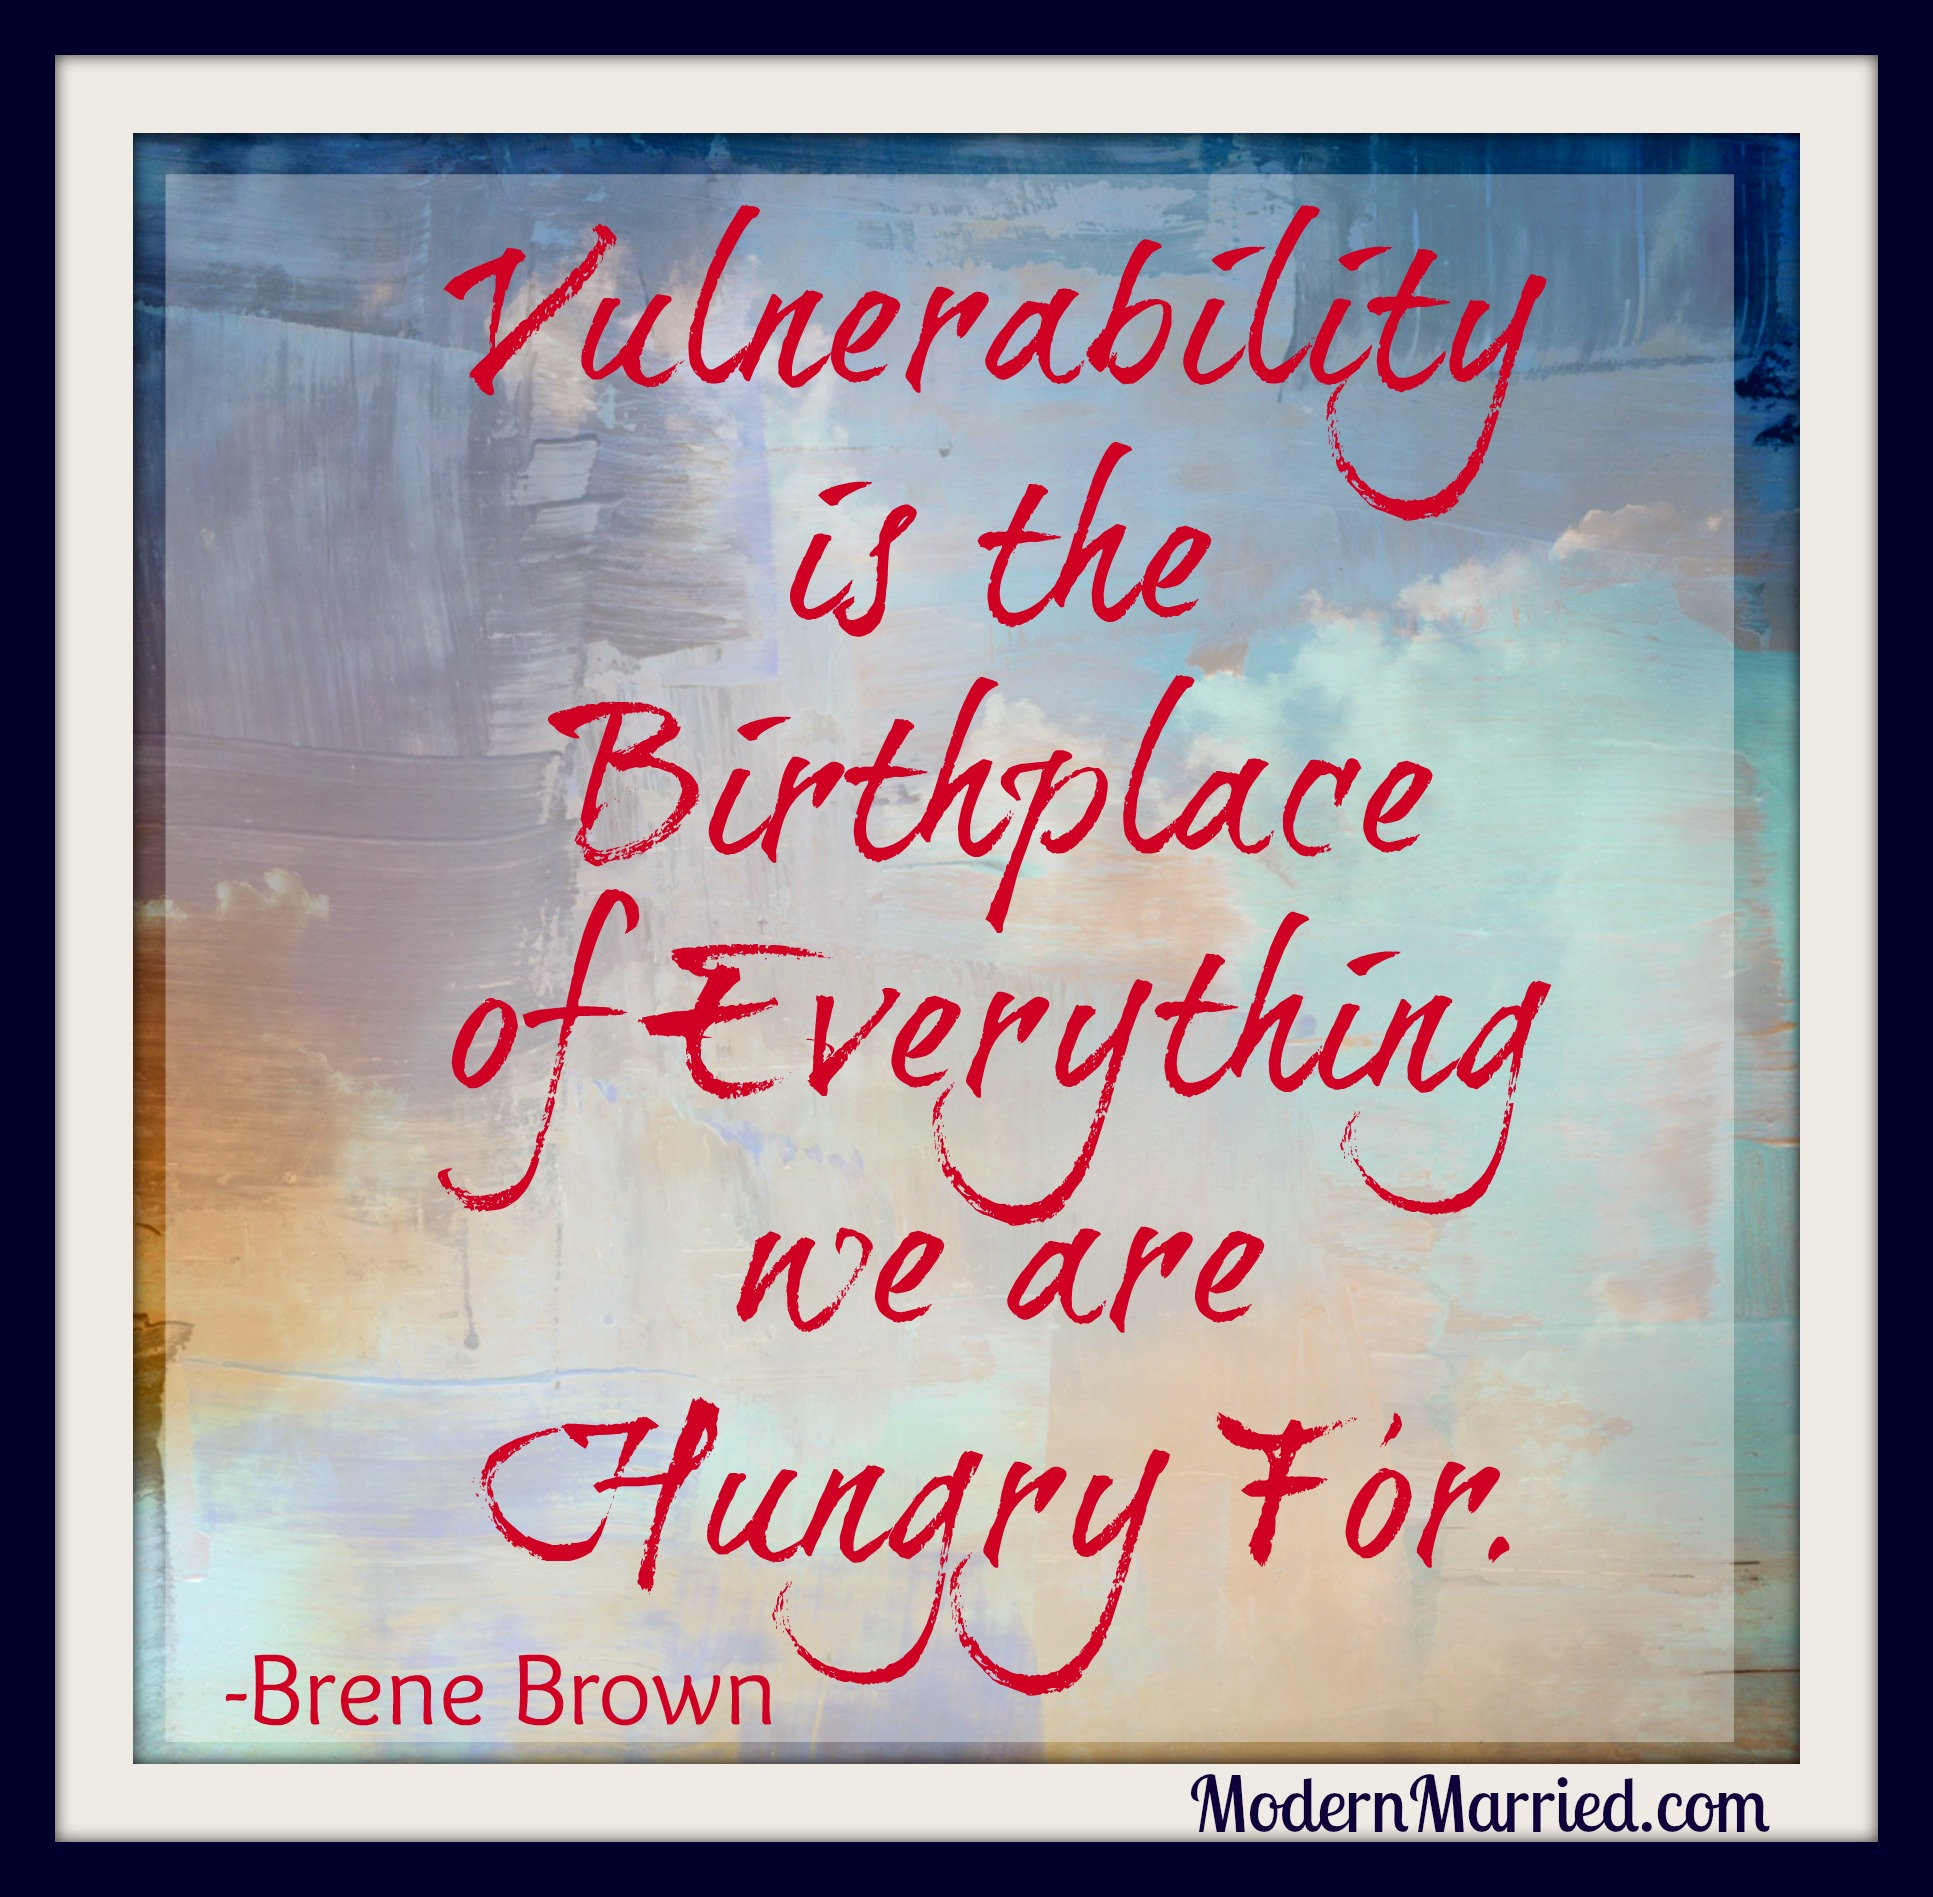 vulnerability definition - Brene Brown Quote